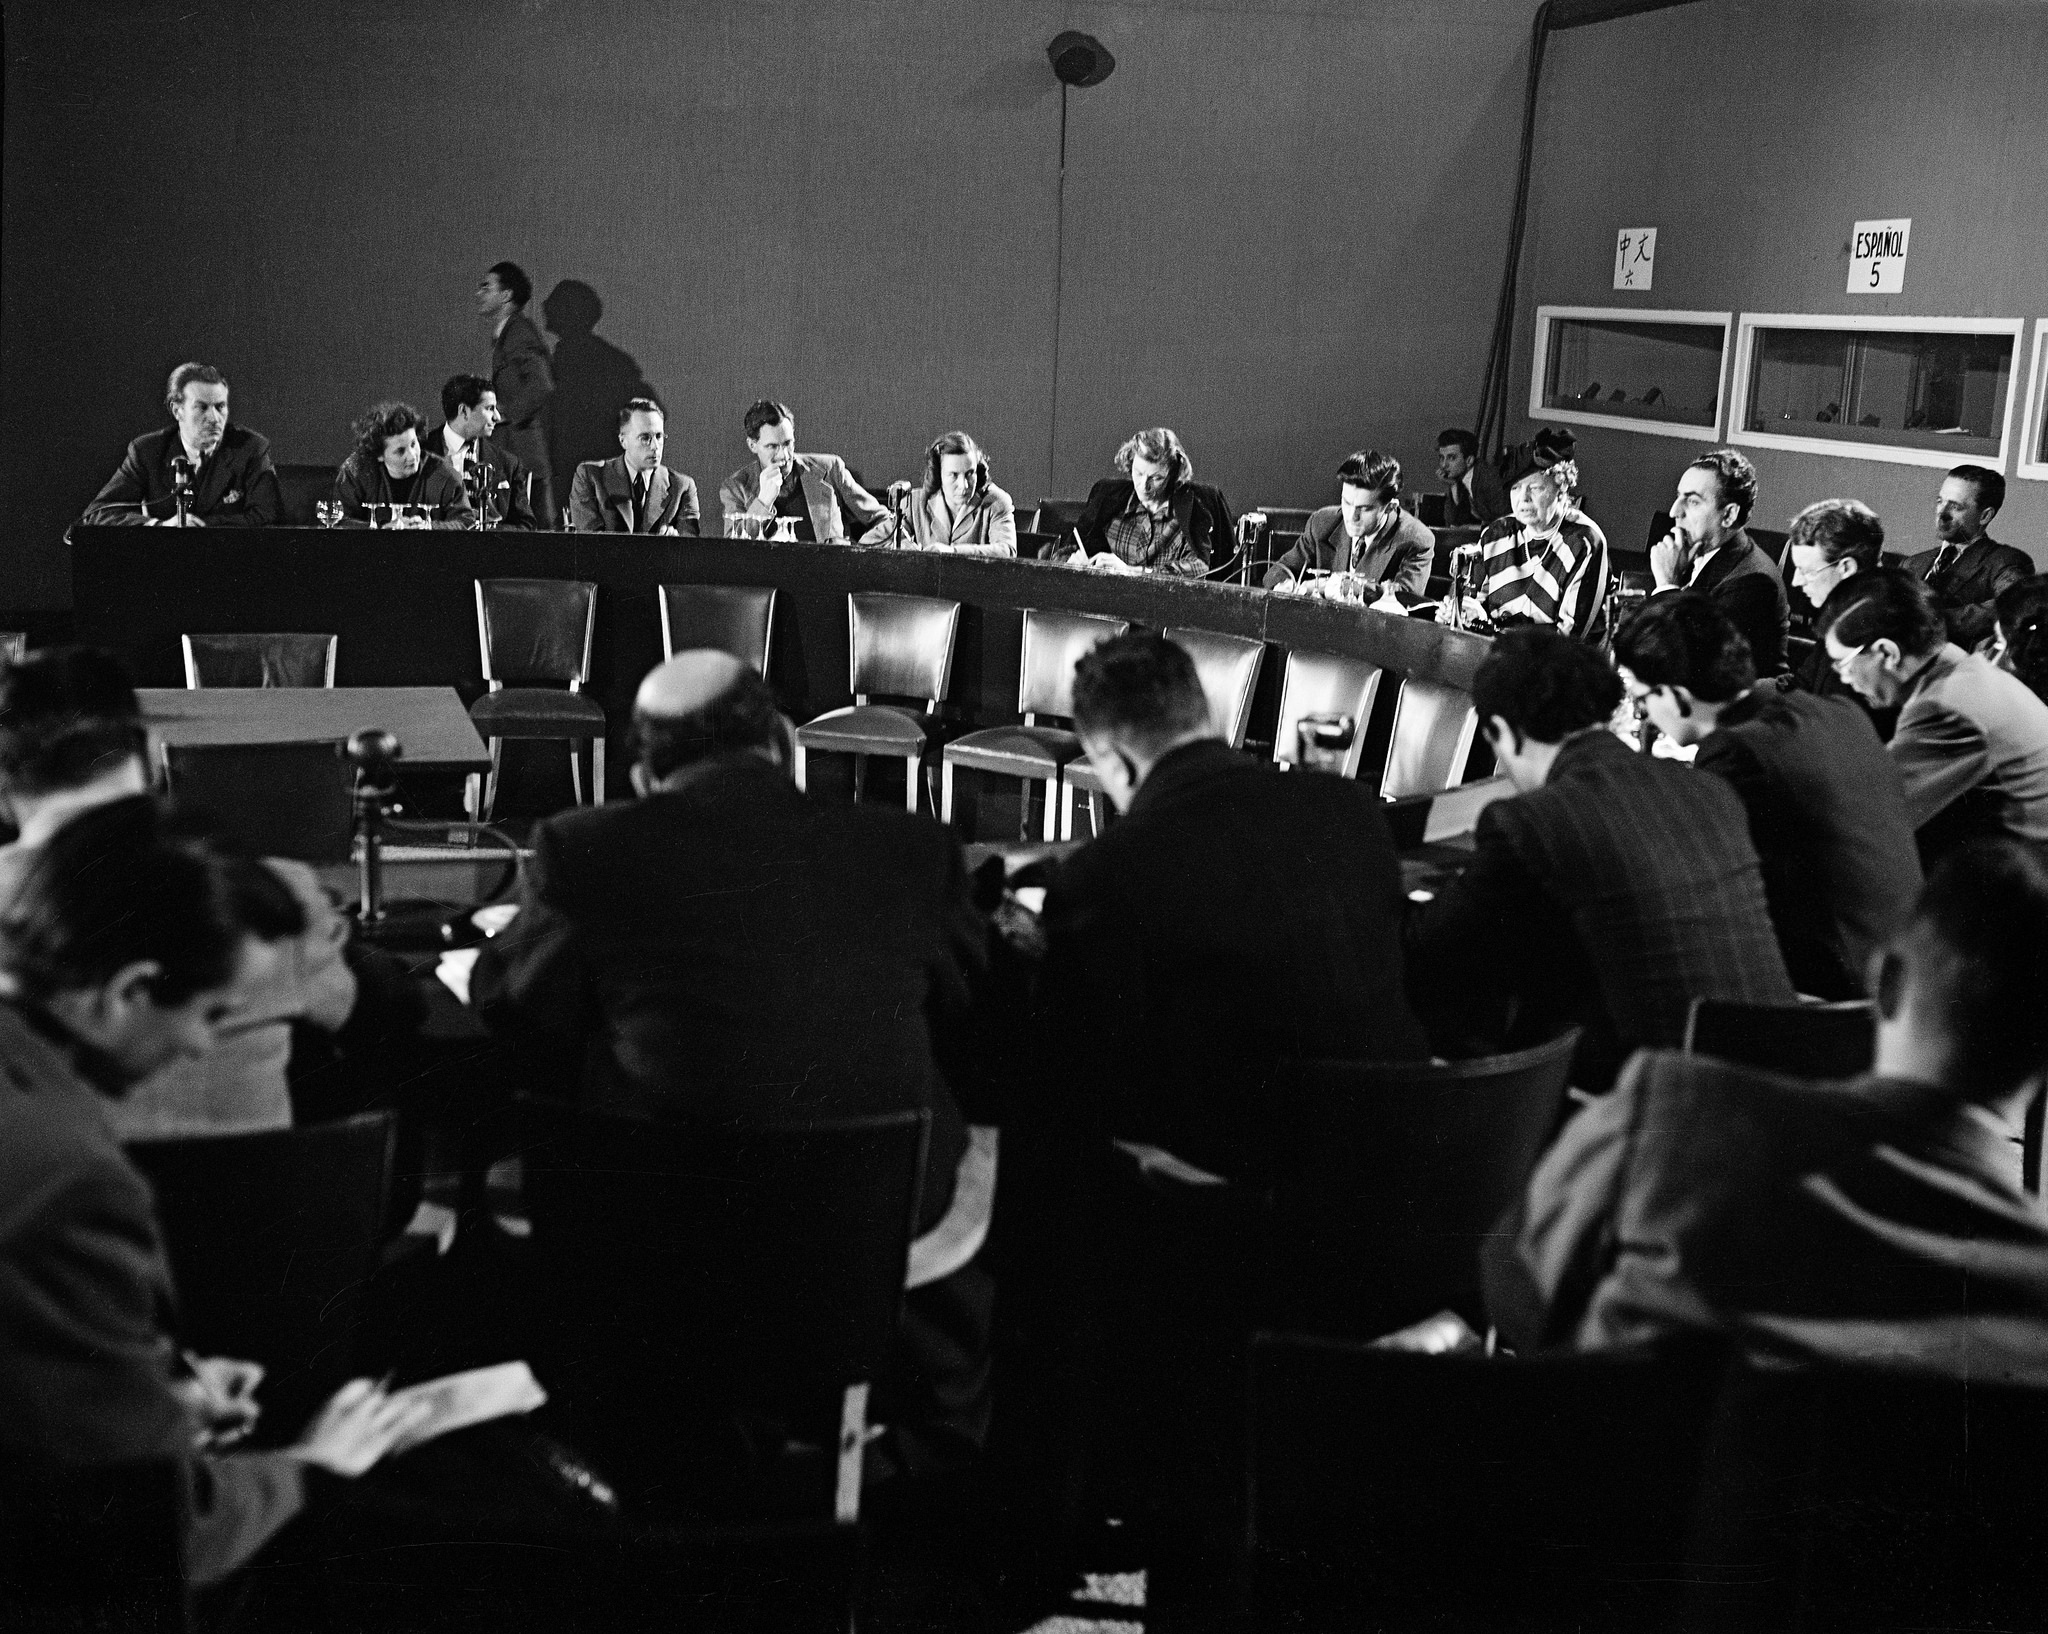 Eleanor Roosevelt, chairman of the Human Rights Commission, and Charles Malik, chairman of the General Assembly's Third Committee (second from right), speak at a press conference after the completion of the Declaration of Human Rights in 1948. The Declaration turns 70 this month. (United Nations Photo)